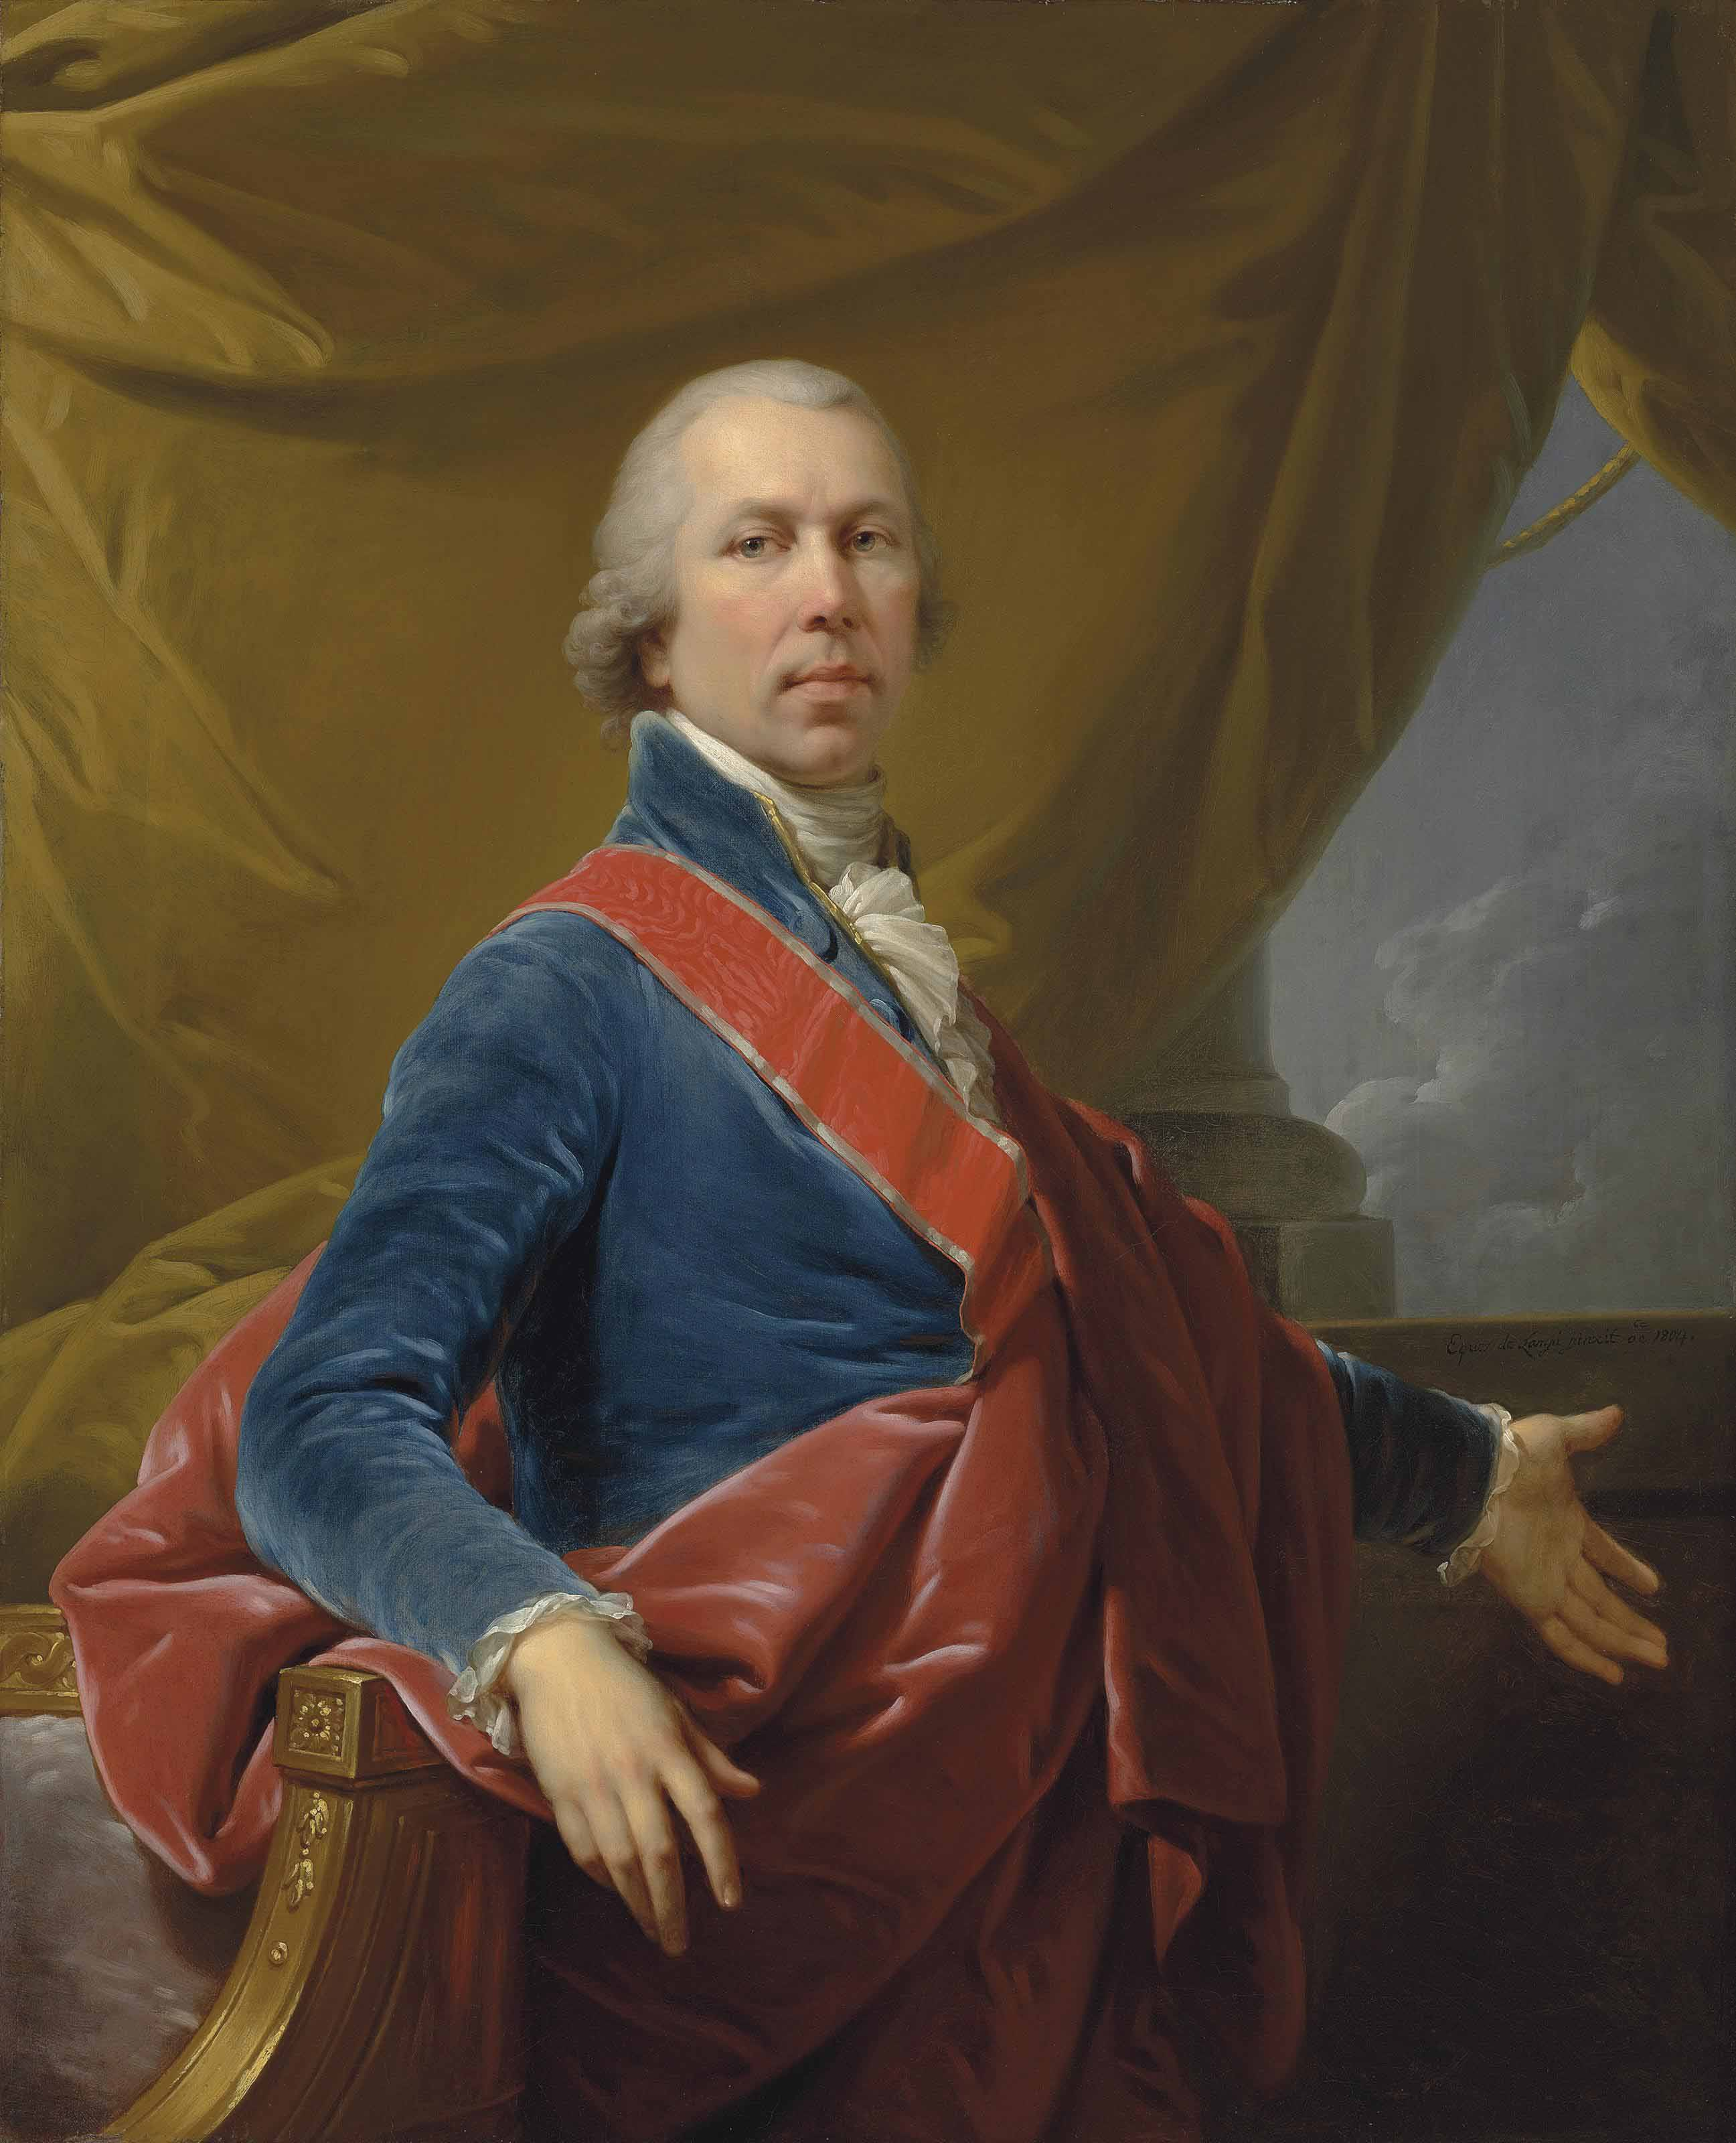 Portrait of a nobleman, half-length, in a blue velvet jacket and white stock, wearing the sash of the Order of Saint Stanislaus and a red mantle, before a draped curtain